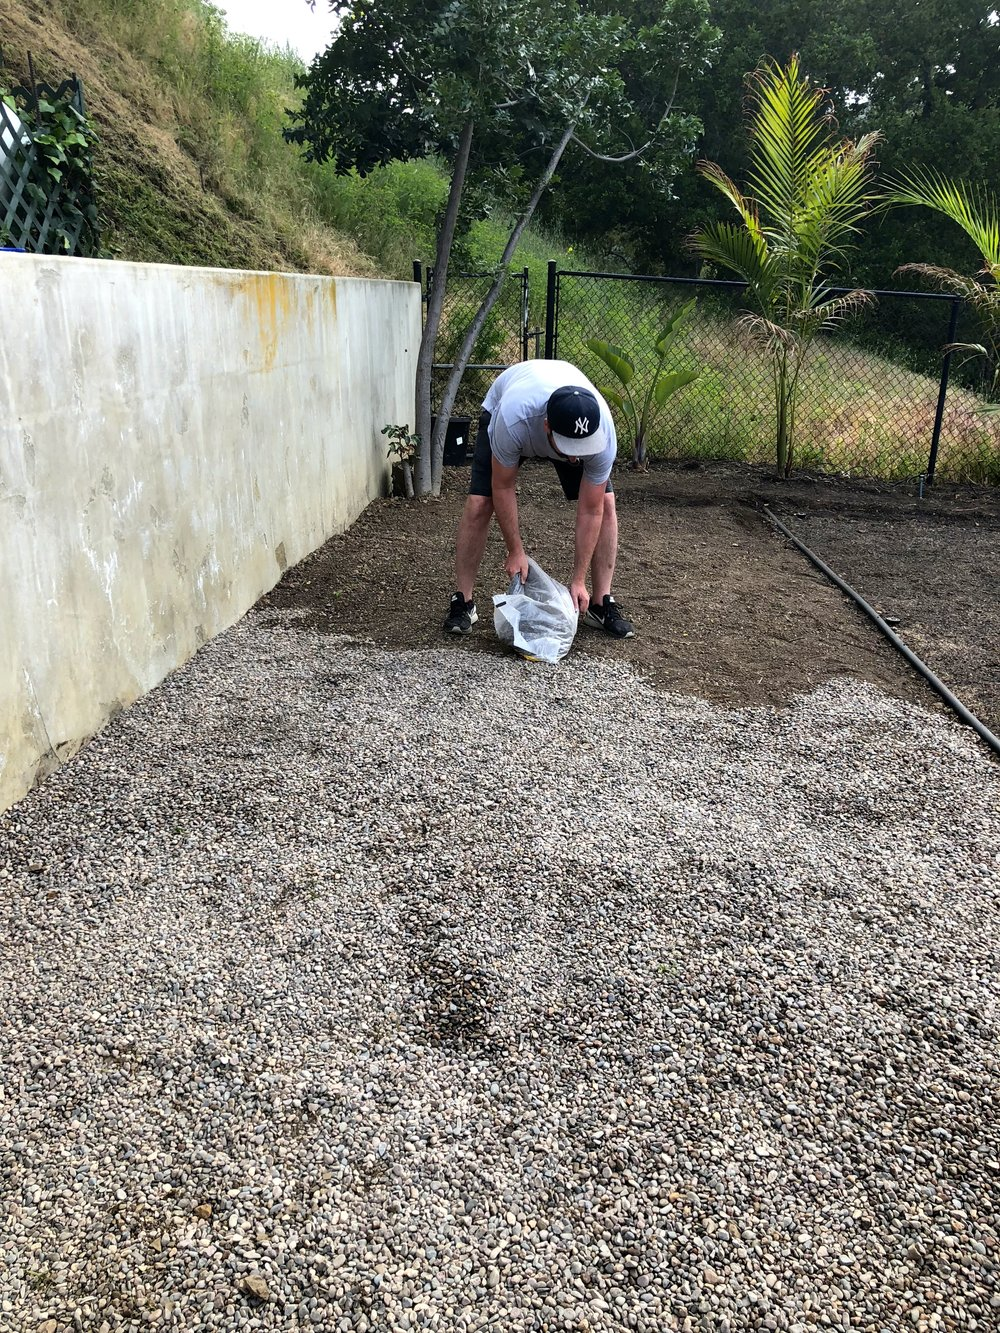 Next we purchased many bags of  pea gravel  from Home Depot, and spread them out like above.